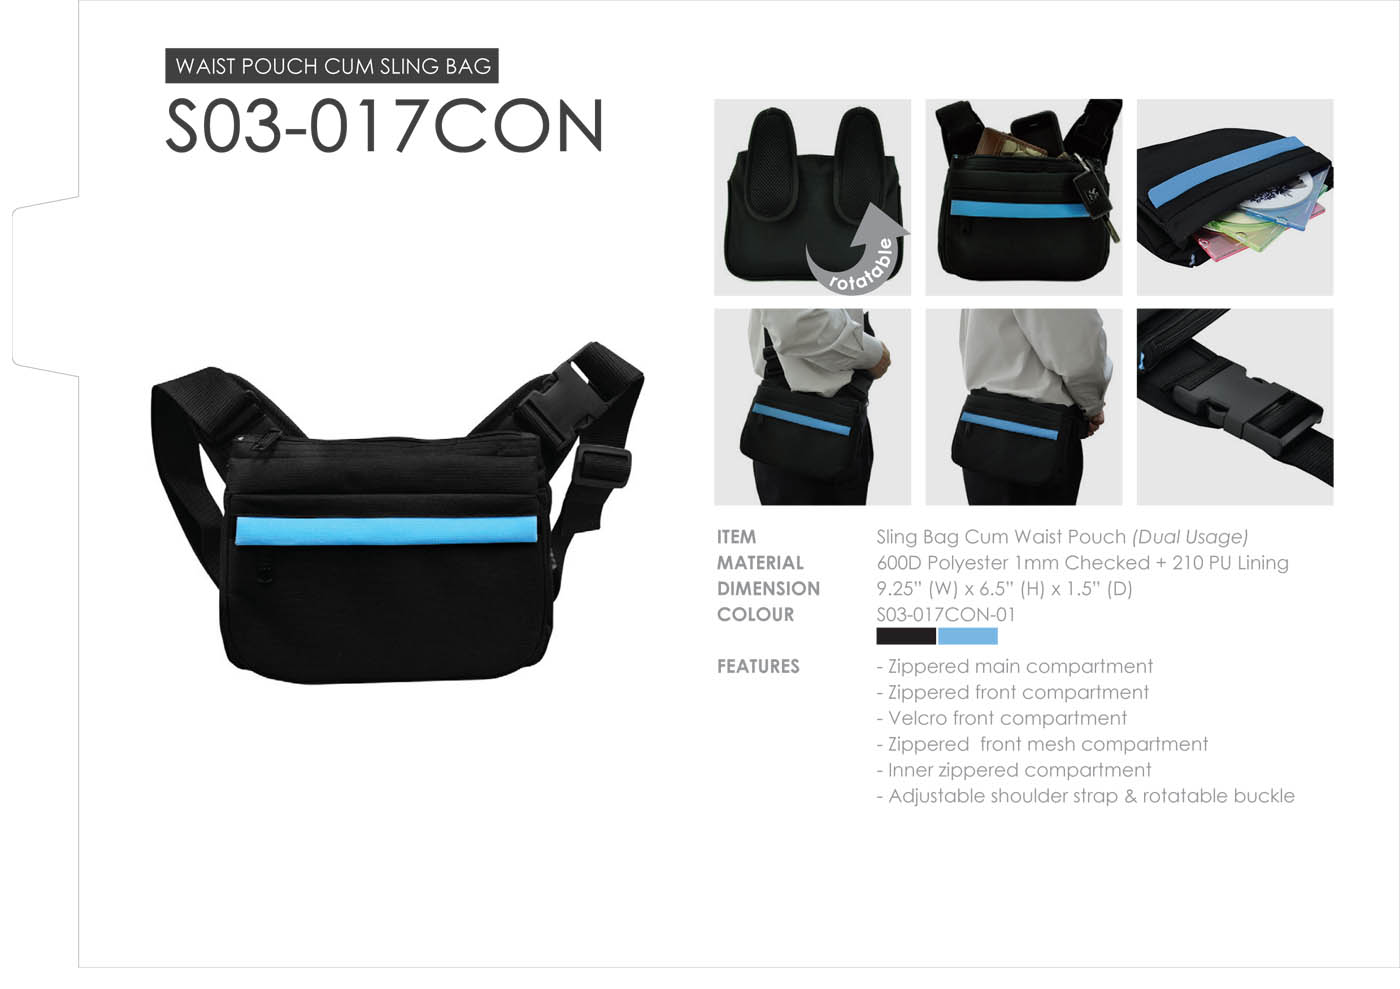 BM Sling Bag cum Waist pouch (end 5/16/2015 2:12 PM - MYT )